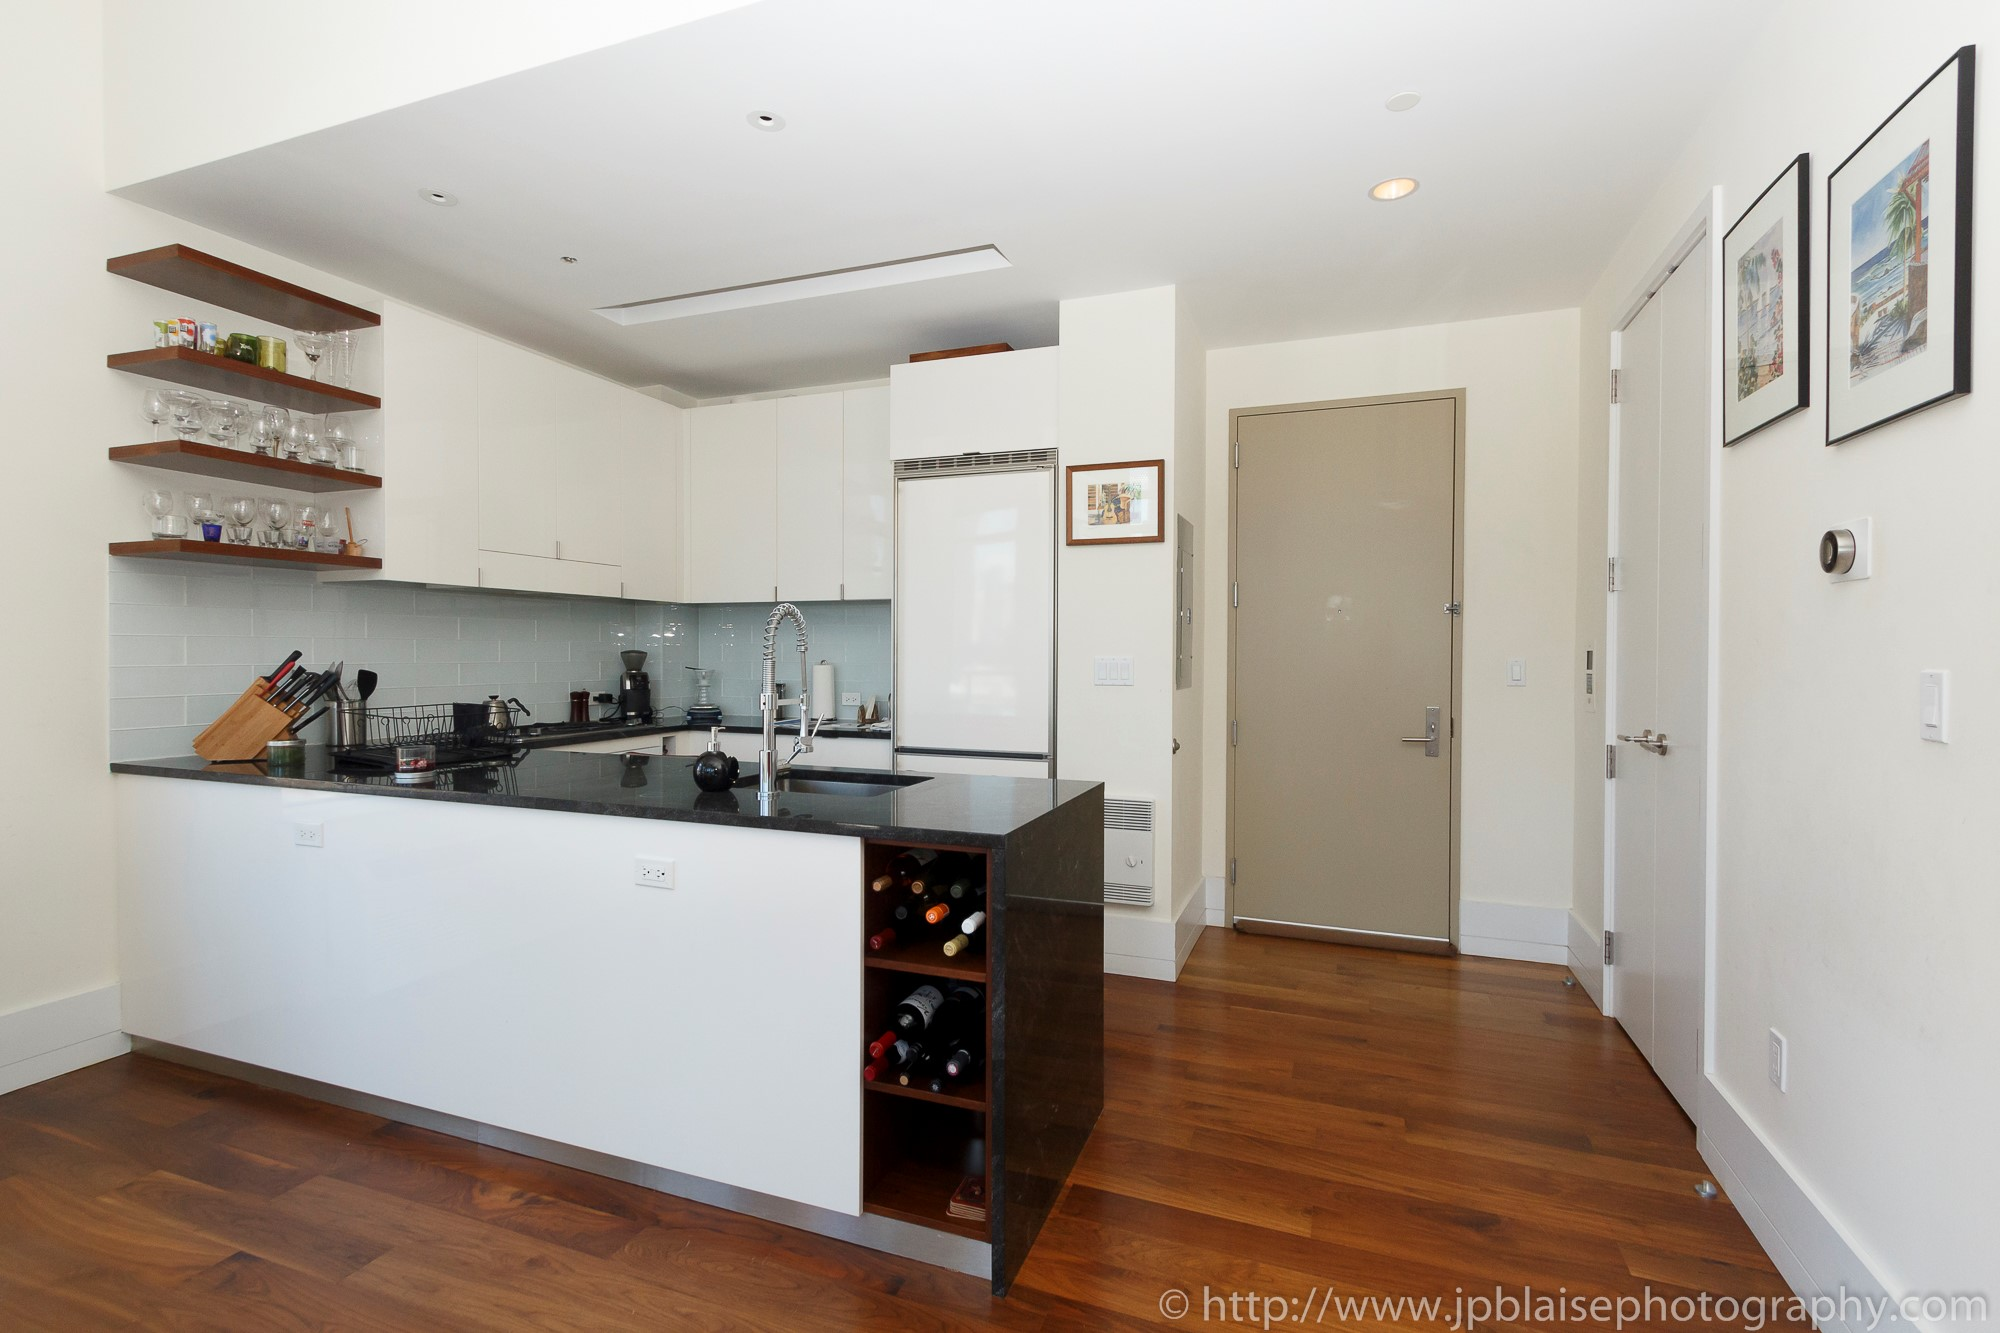 New york real estate photographer one bedroom apartment long island city queens kitchen